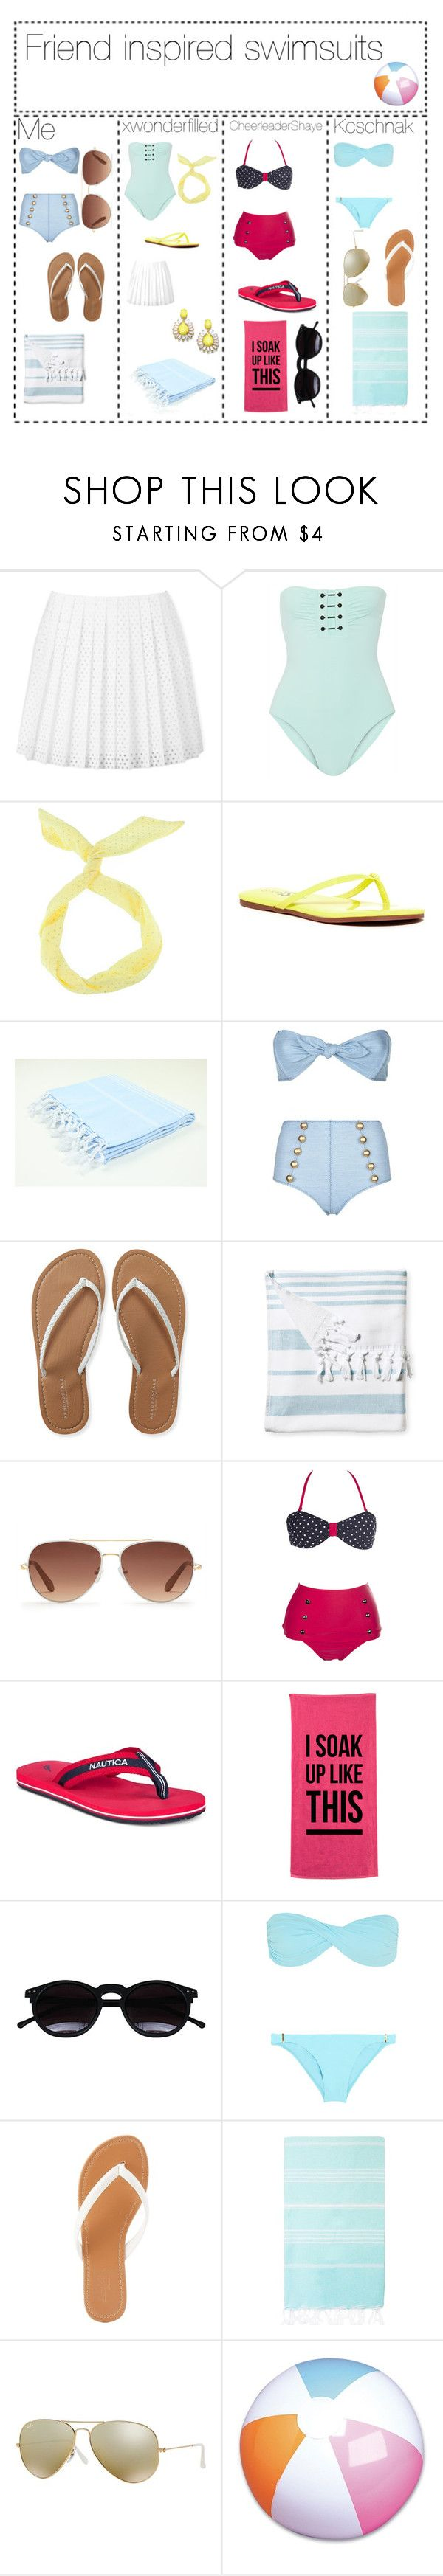 """Friend inspired swim suits"" by nutella-pig on Polyvore featuring McQ by Alexander McQueen, Proenza Schouler, Yosi Samra, Lisa Marie Fernandez, Aéropostale, Serena & Lily, Stella & Dot, Nautica, Chicnova Fashion and Melissa Odabash"